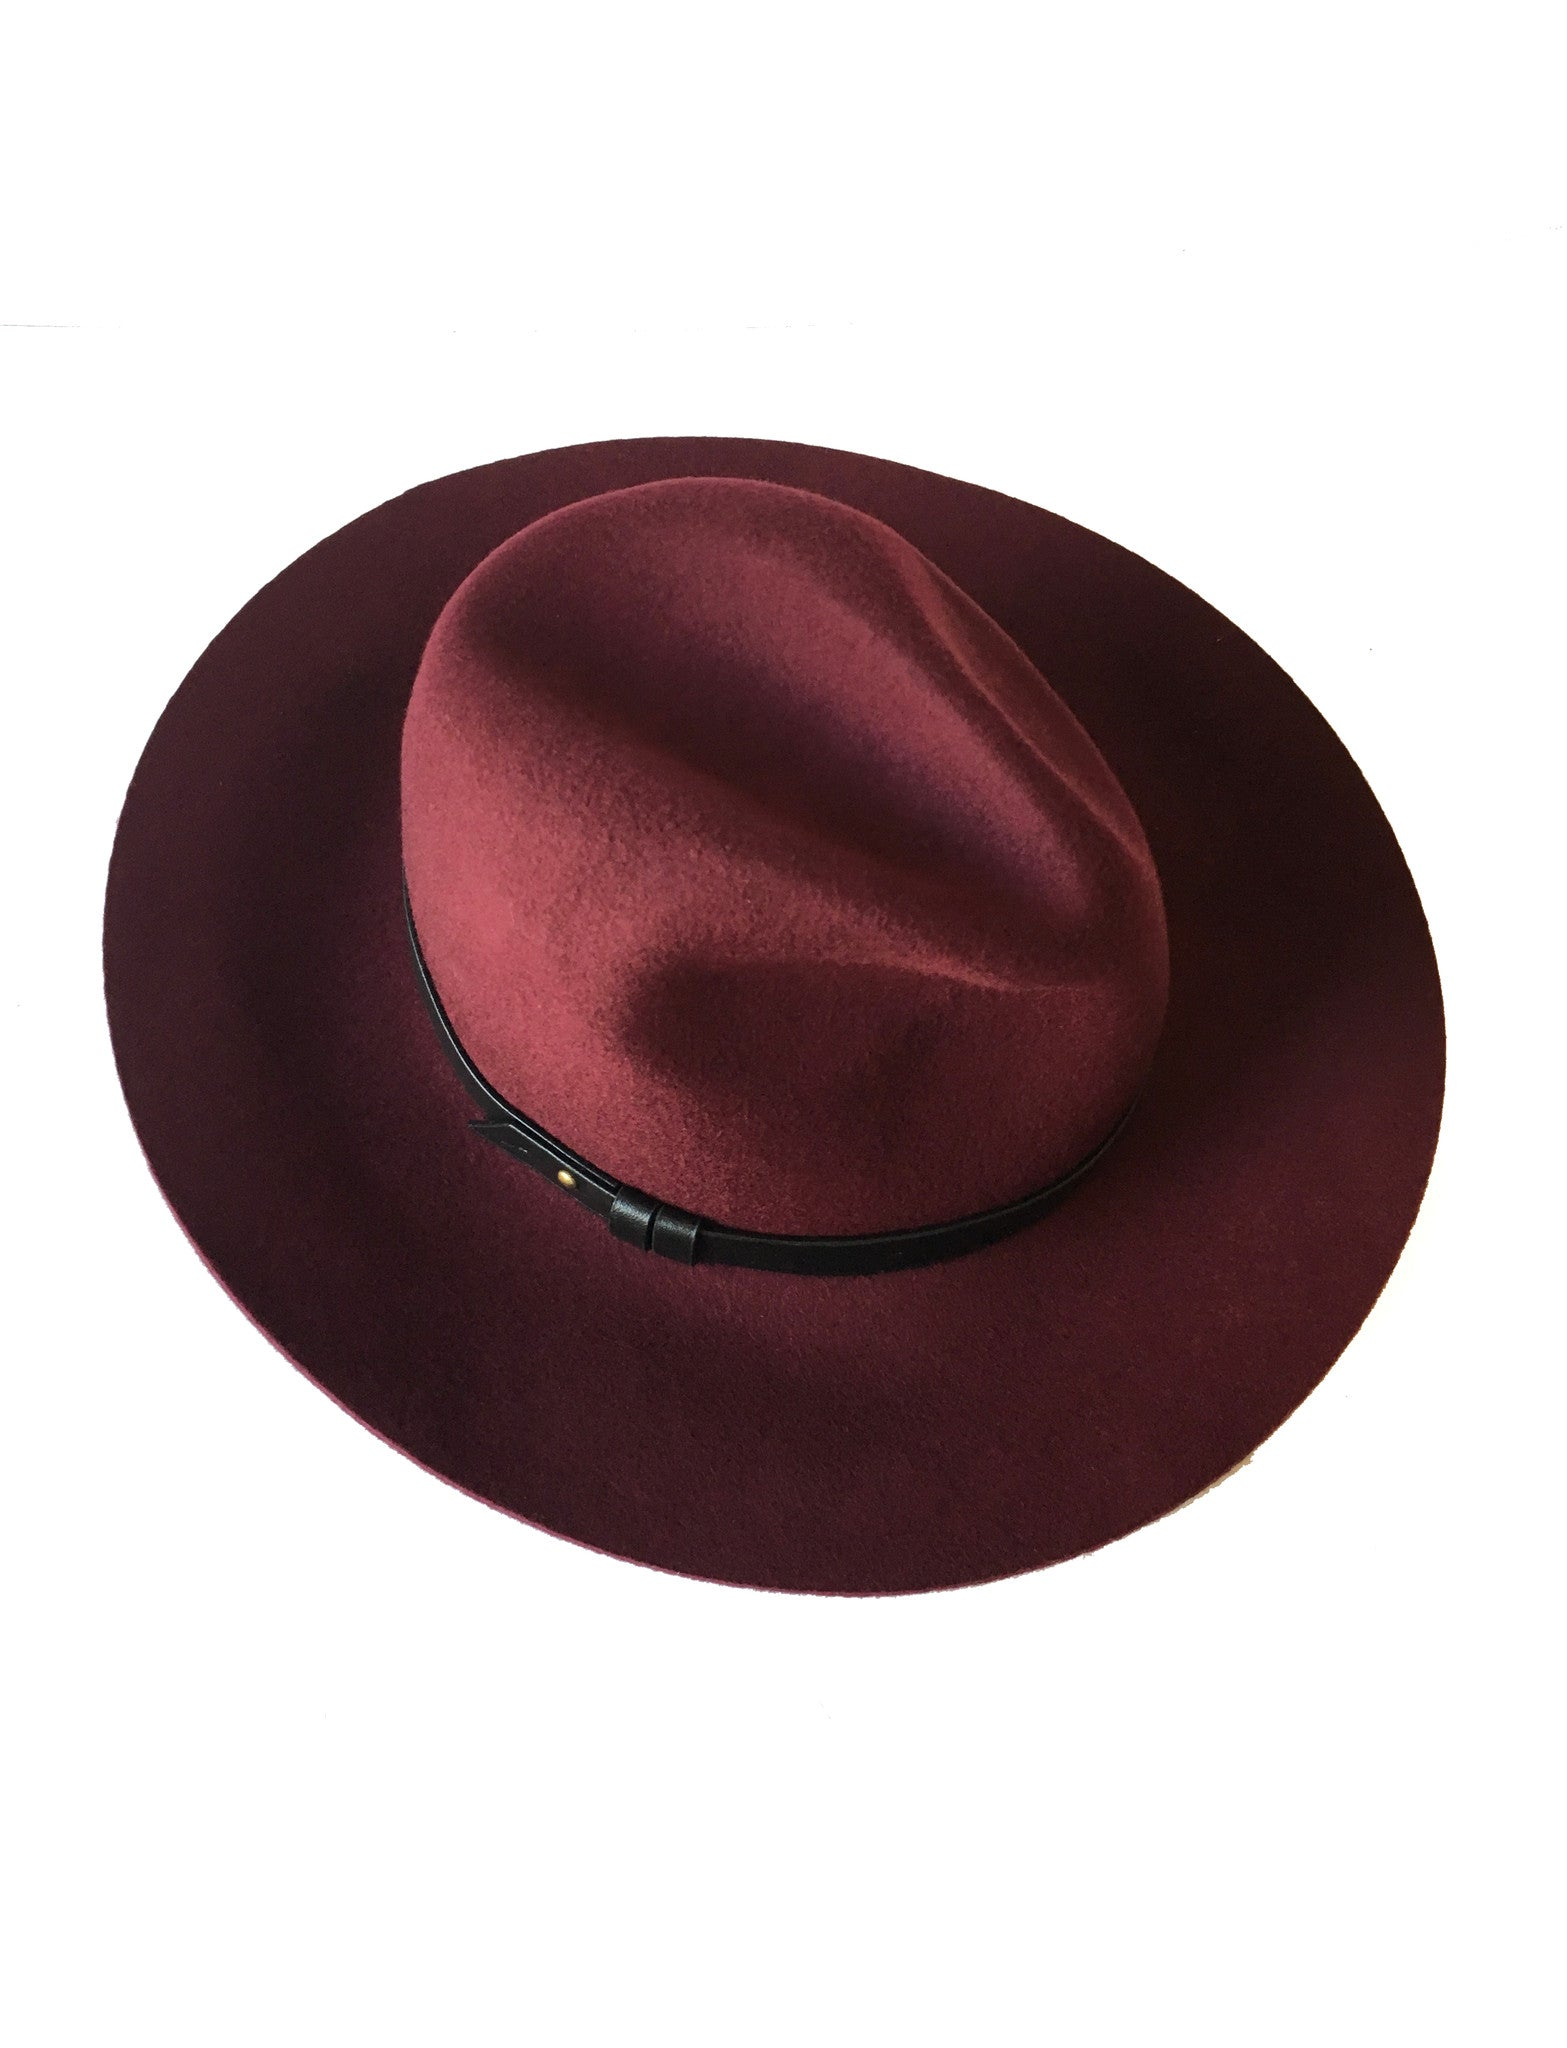 INDY HAT IN WINE